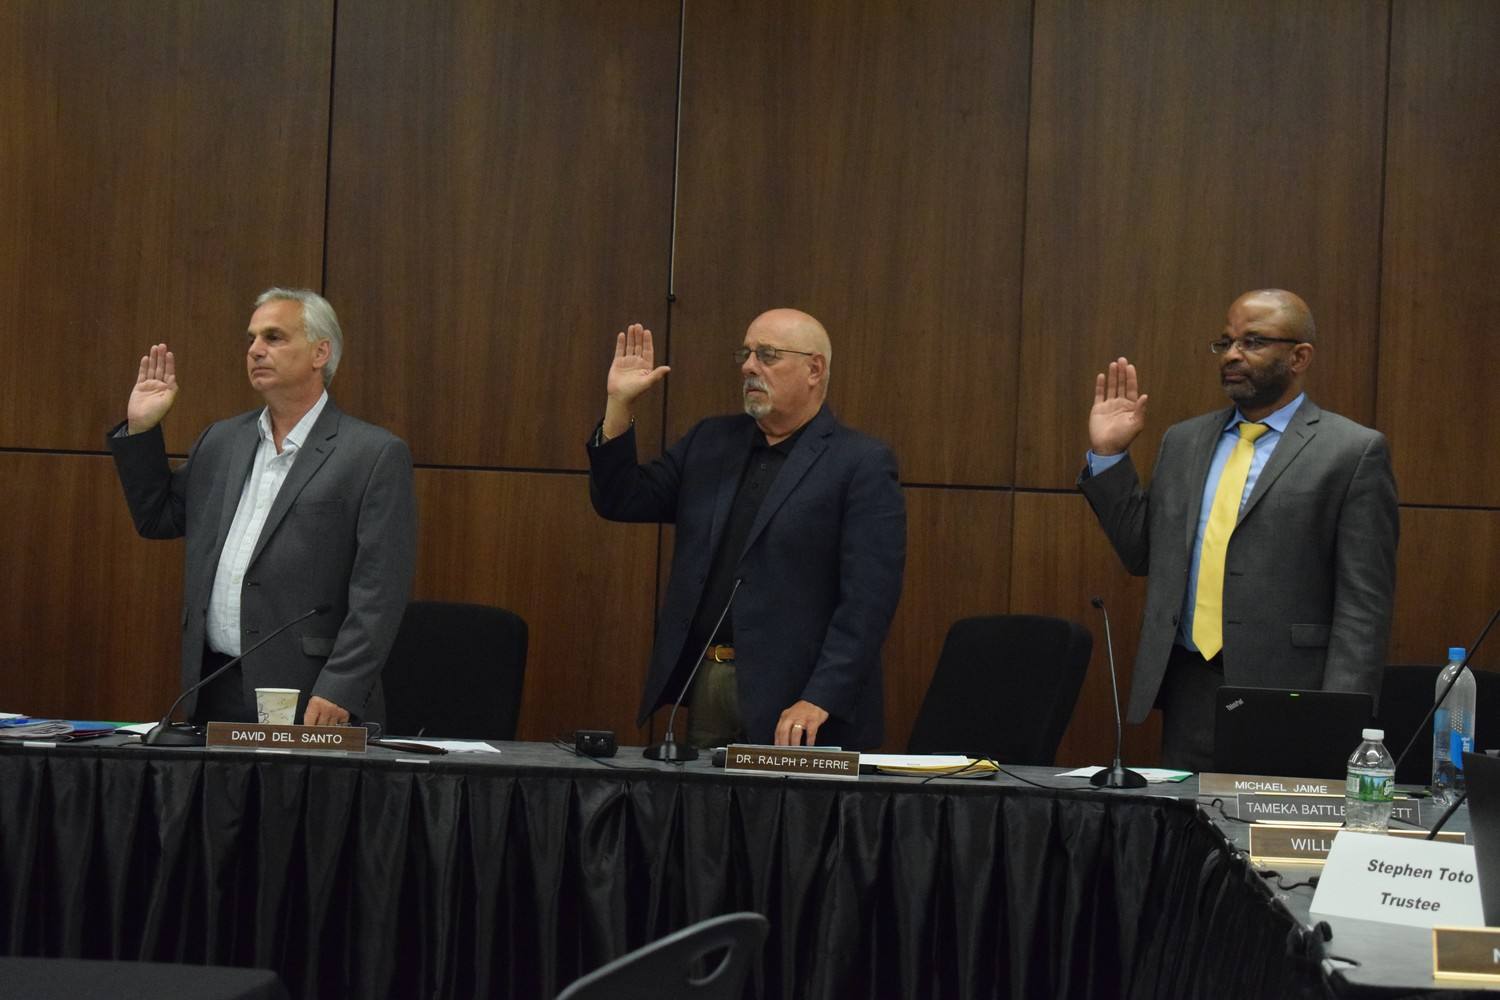 Sewanhaka Central High School District Board of Education President David Del Santo, far left, Superintendent Ralph Ferrie and Vice President Michael Jaime renewed their oaths to serve the district during the July 9 reorganization meeting. This was the last swearing-in for Ferrie, who announced he would retire next summer.